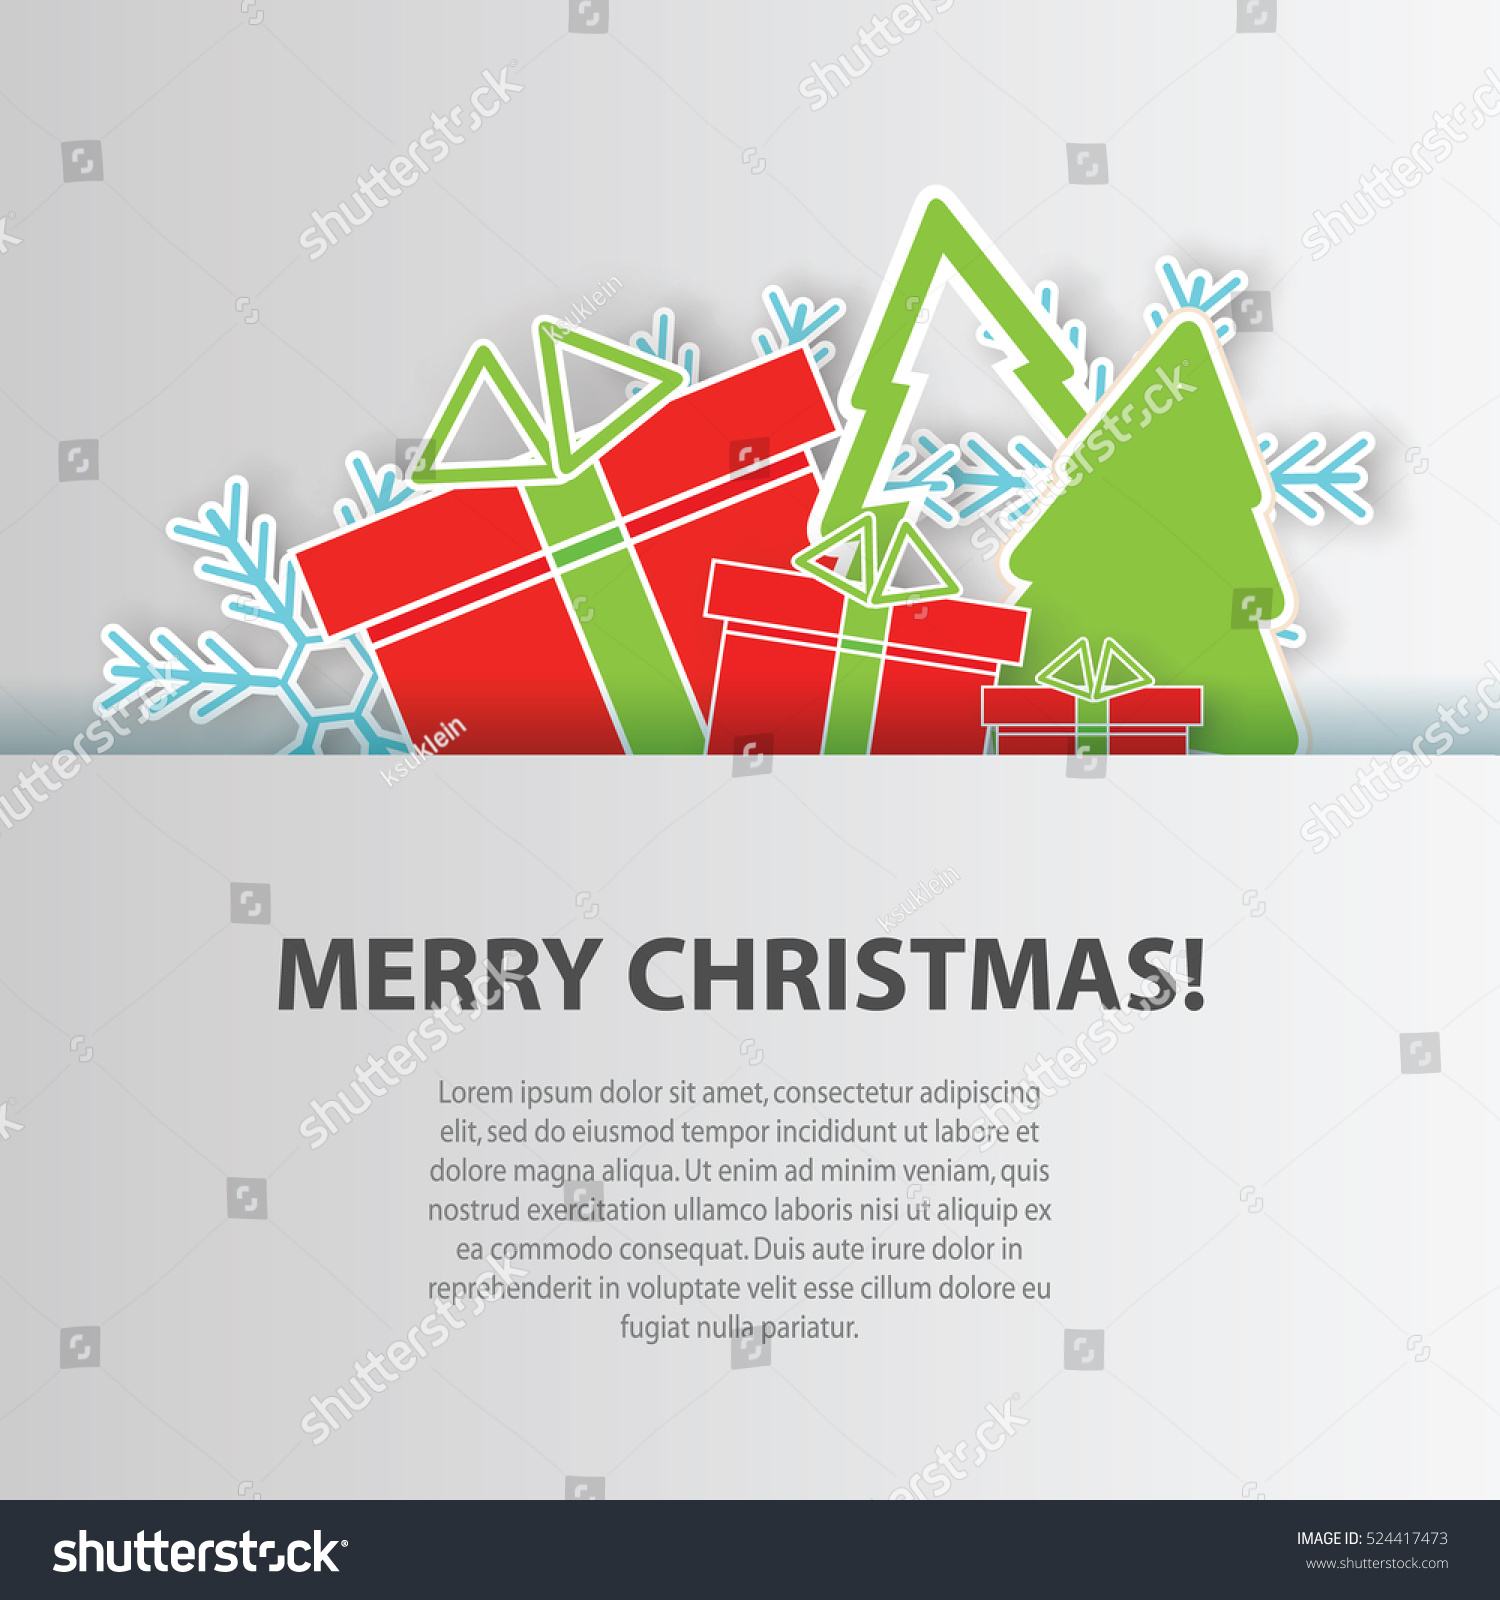 Merry christmas greeting card paper craft stock vector for Craft paper card stock